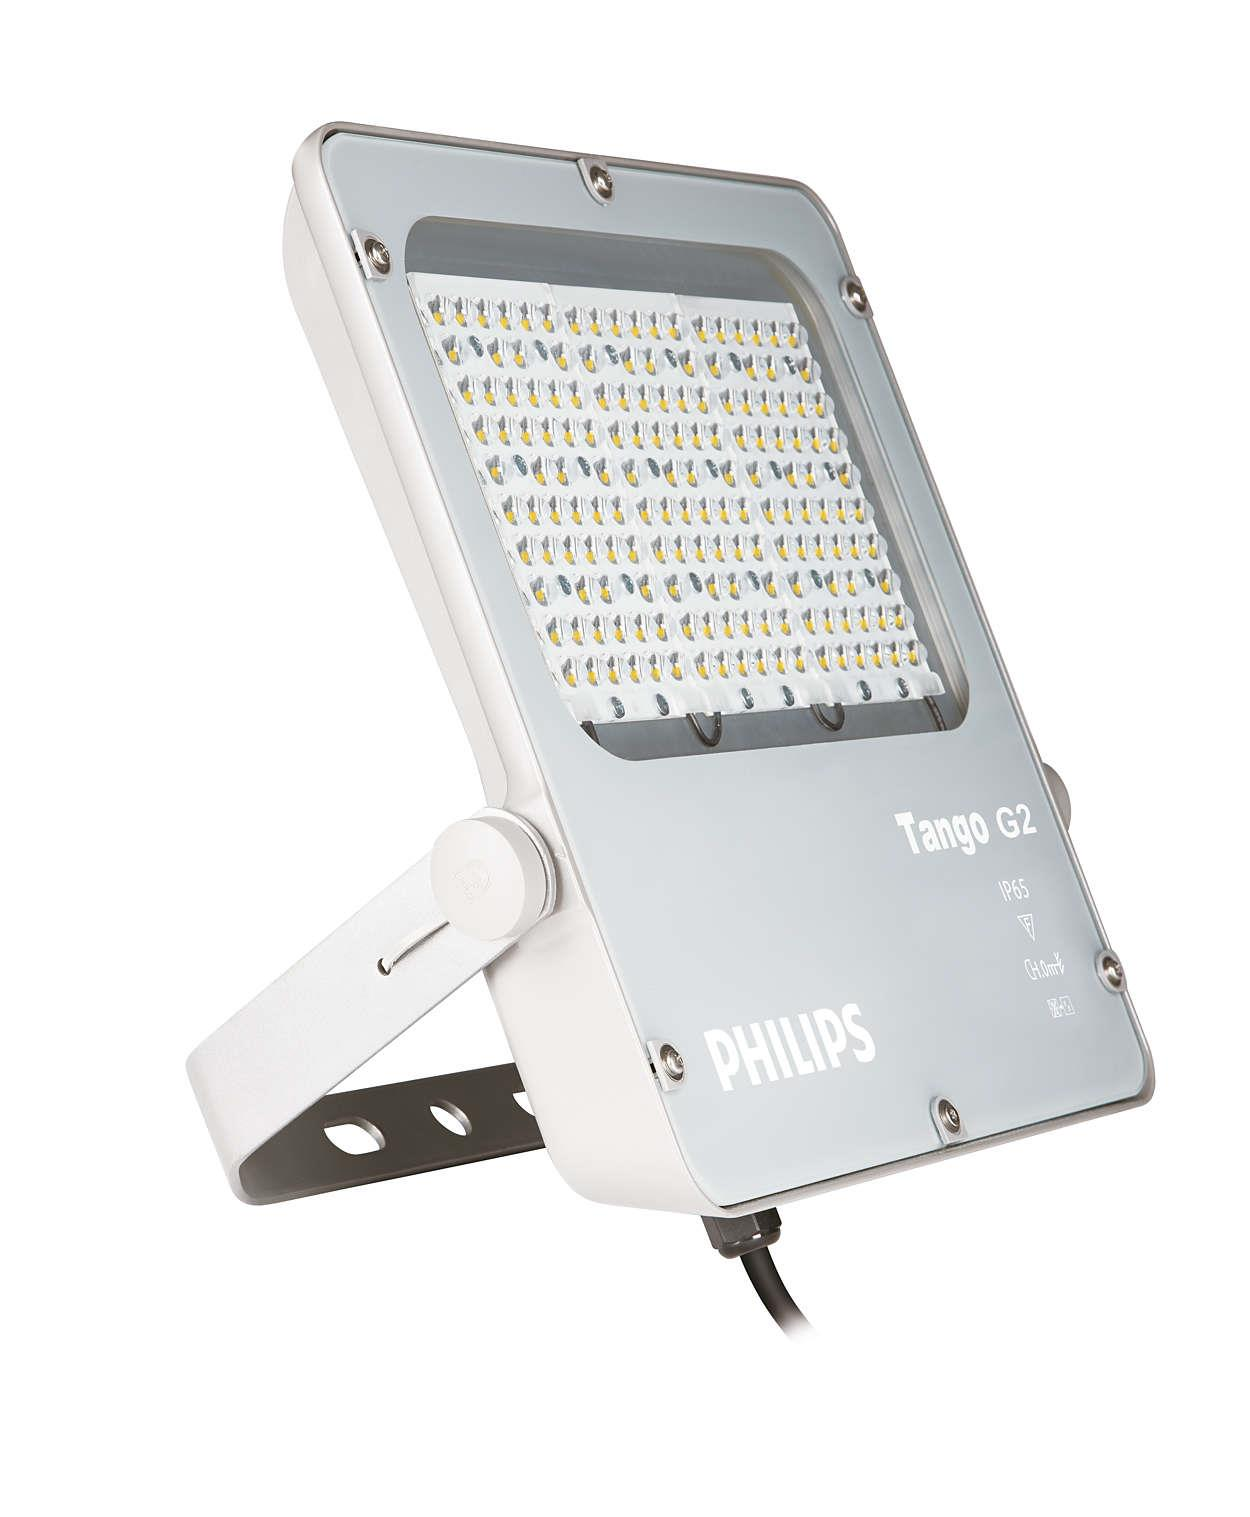 Jual Lampu Sorot LED / Flood Light Philips BVP281 -80W AC